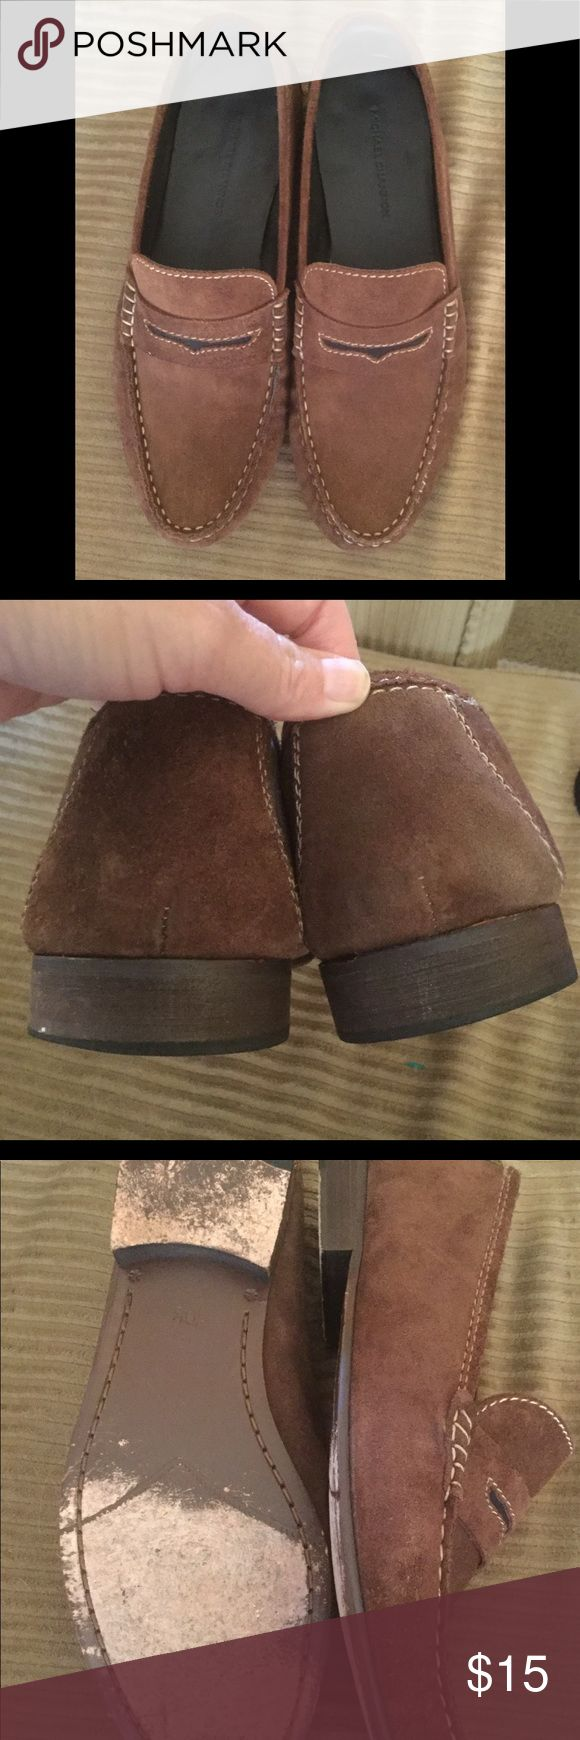 Men's suede loafer Men's brown suede loafer size 10.5. Excellent condition. michael shannon Shoes Loafers & Slip-Ons